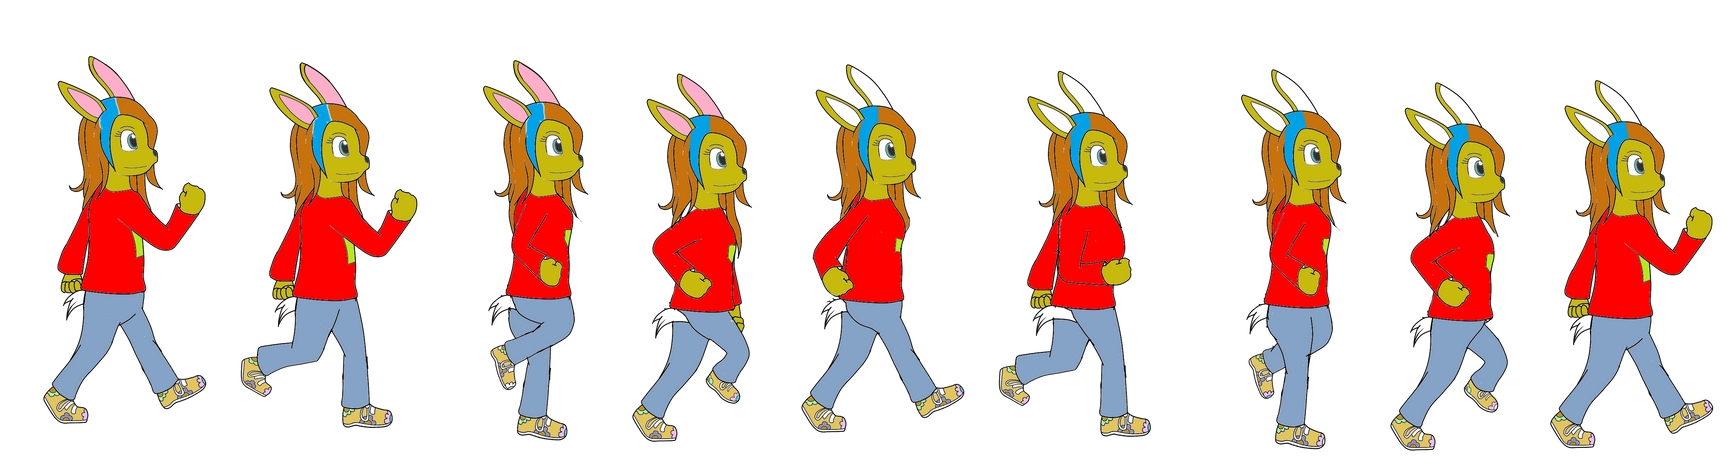 Bunny walks Colored